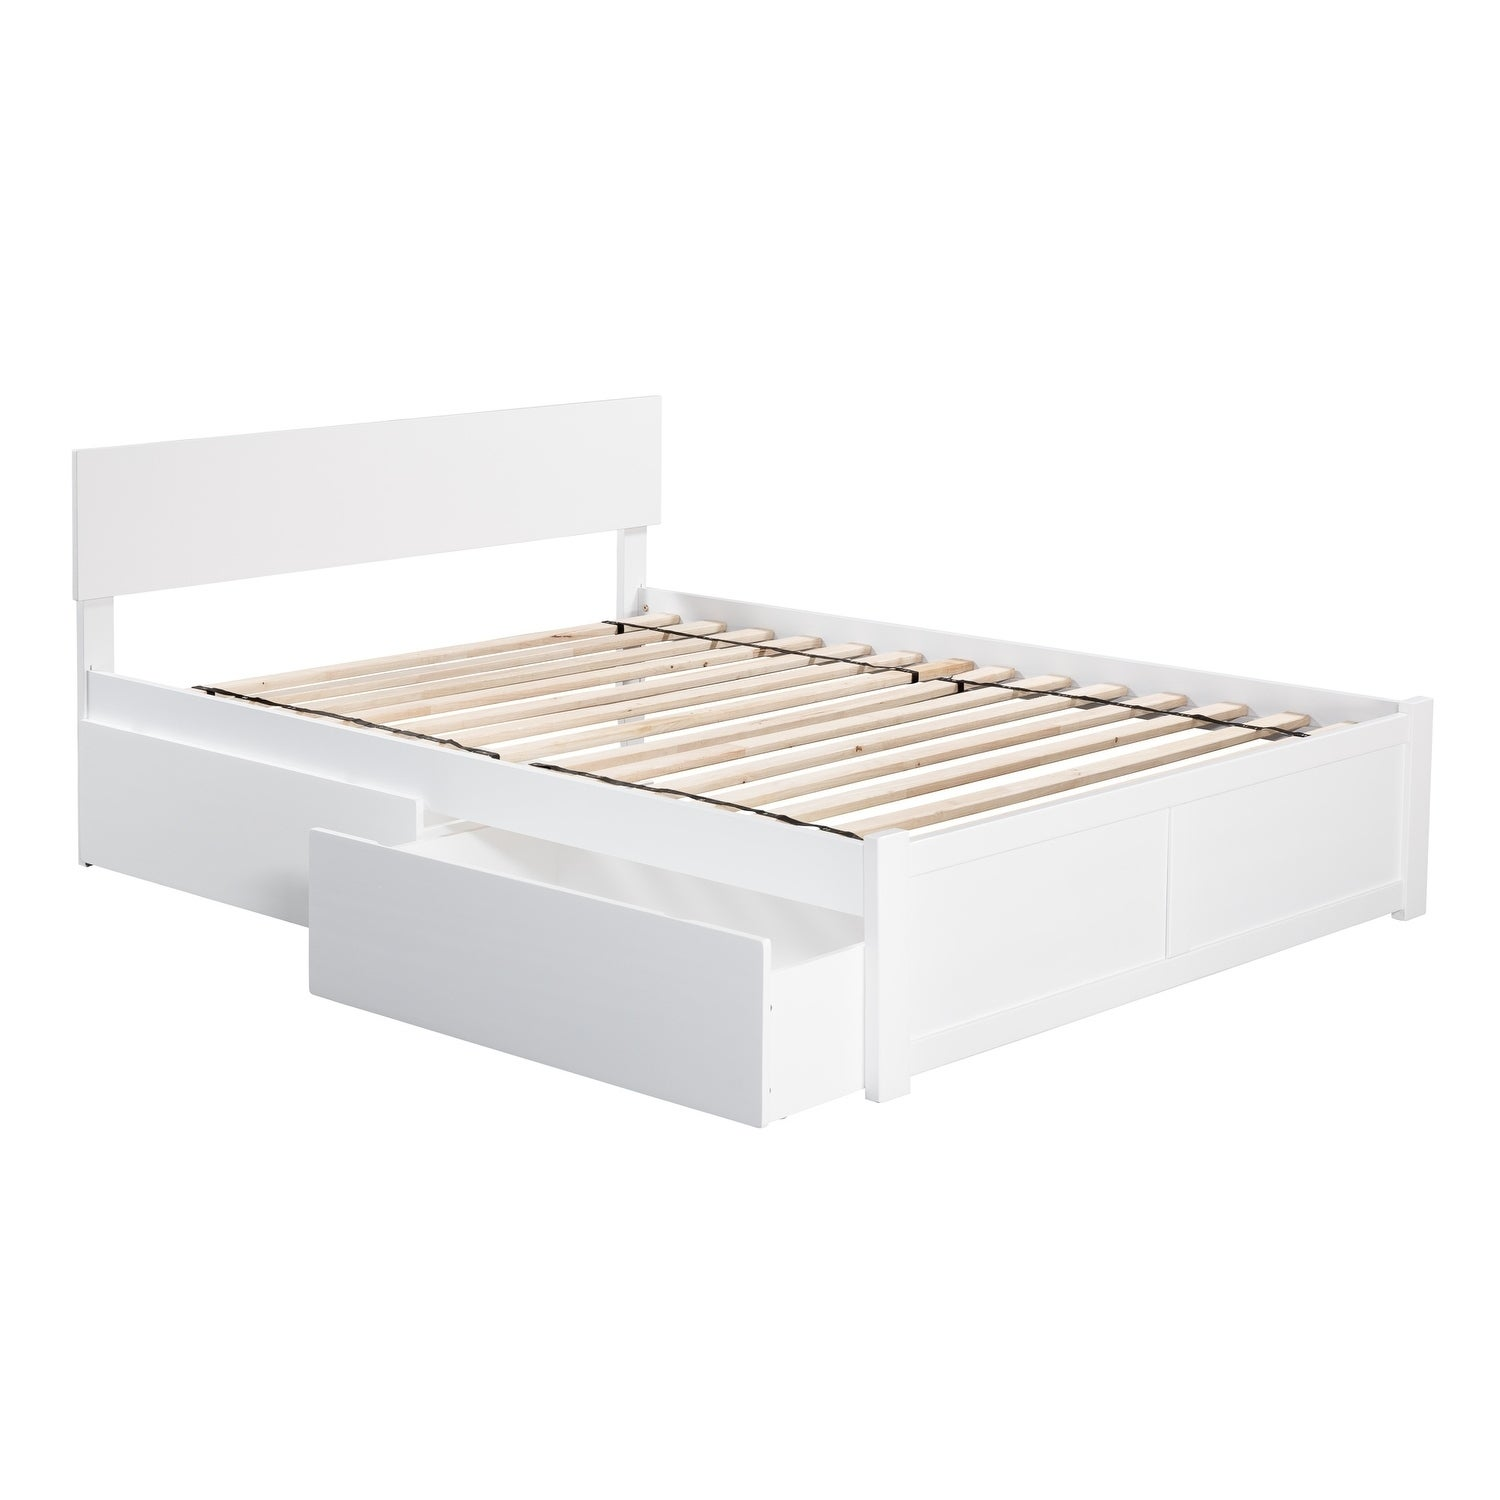 Orlando Full Platform Bed With Flat Panel Foot Board And 2 Urban Bed Drawers In White Overstock 12852261